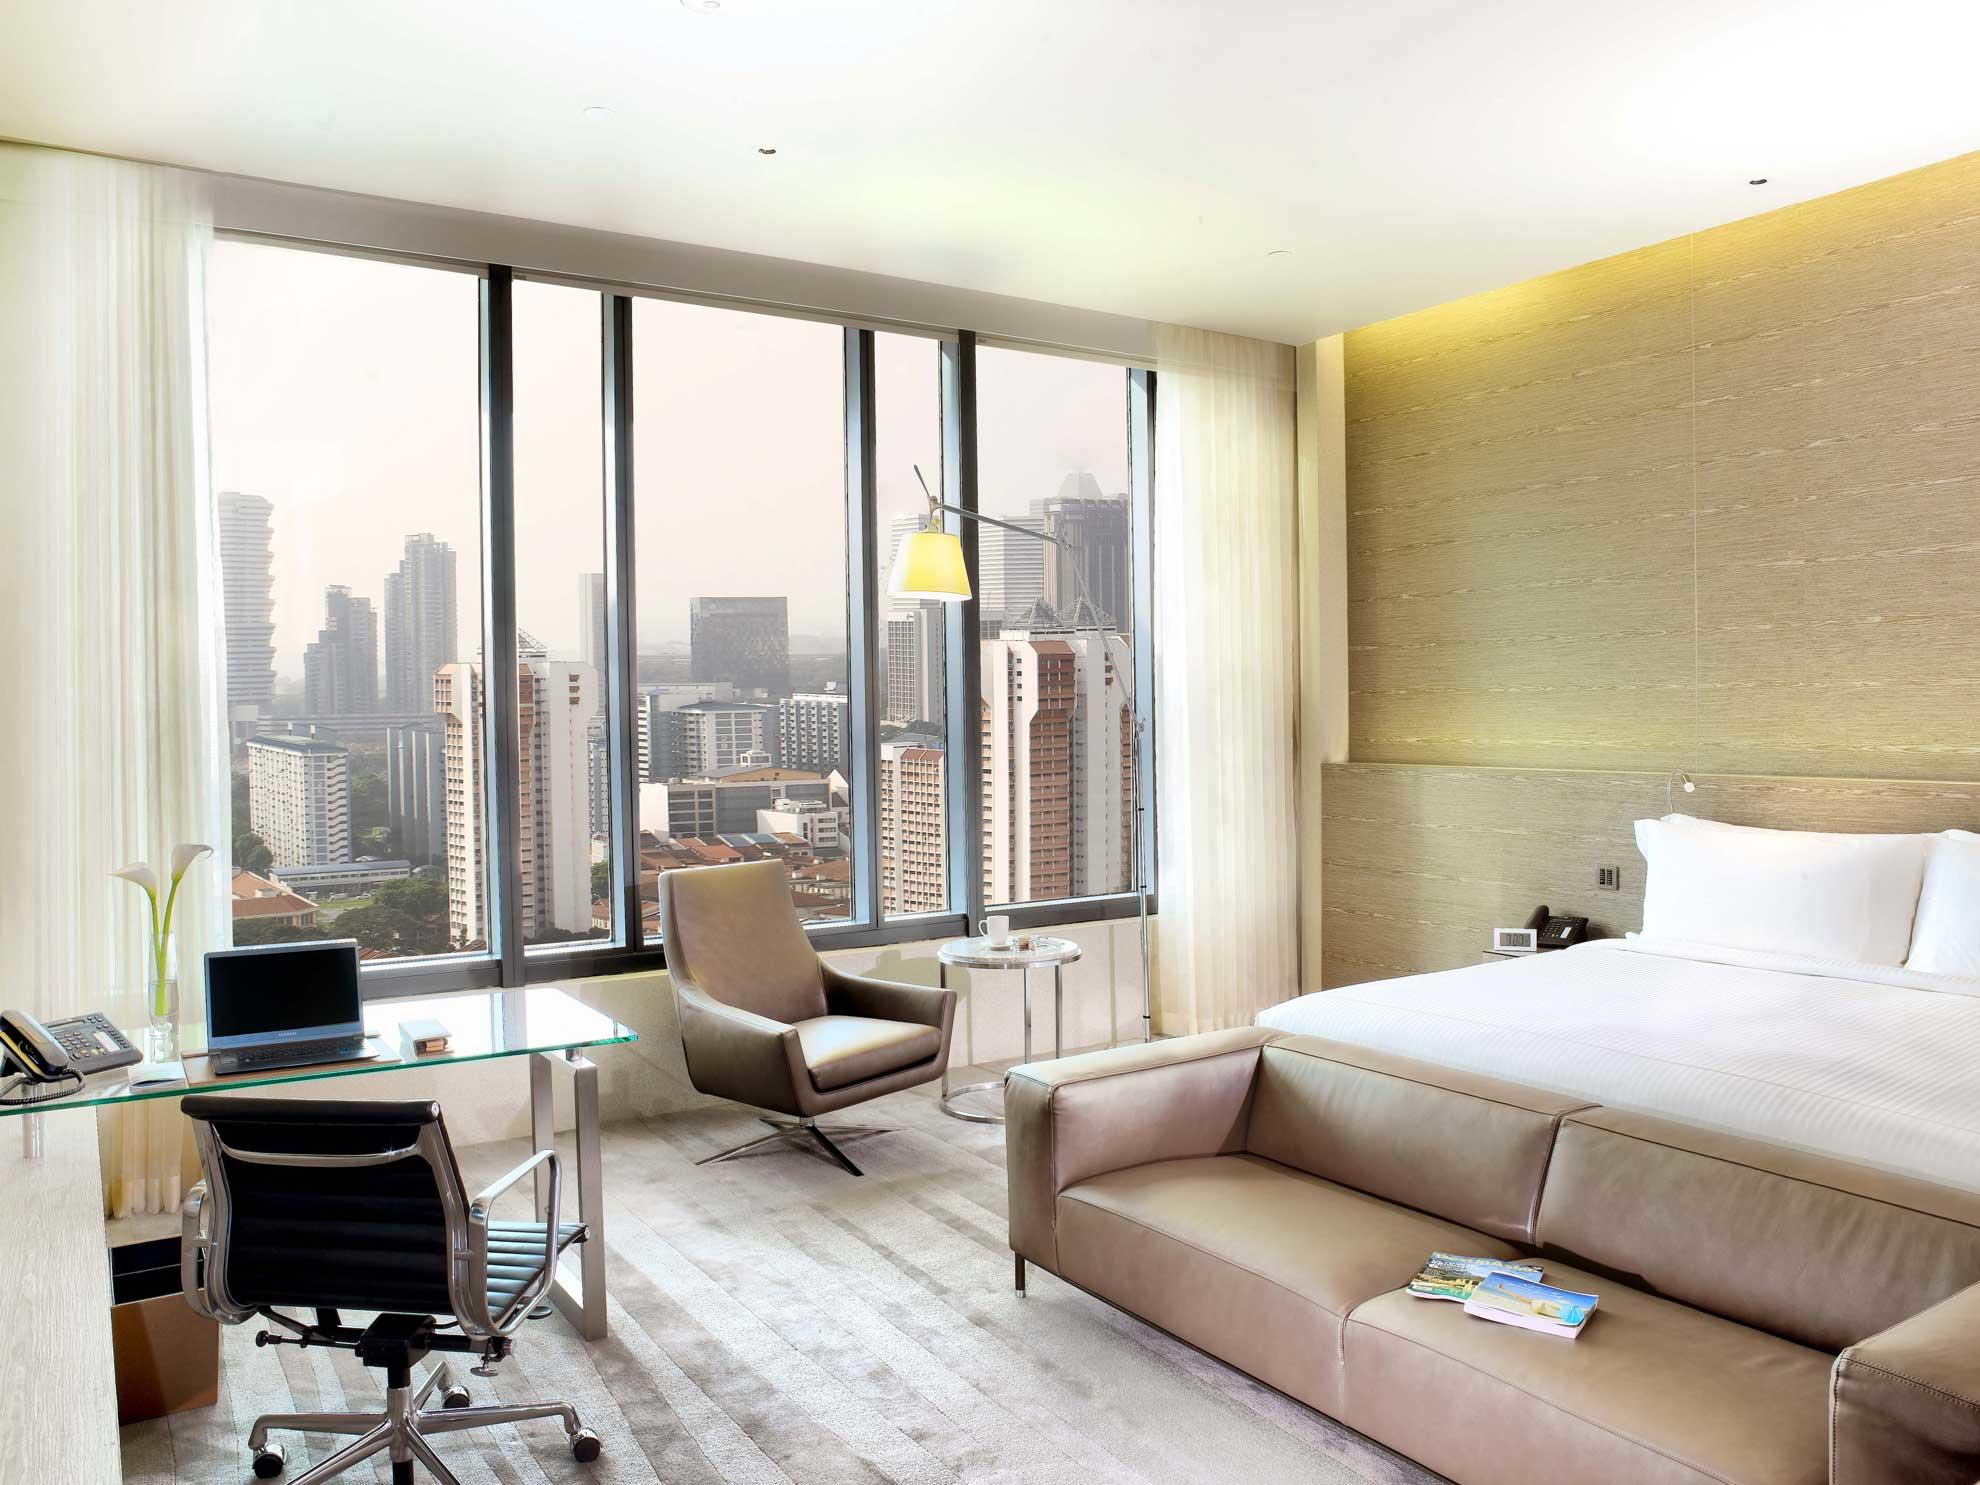 Interior of Skyline studio with a building view at one farrer hotel